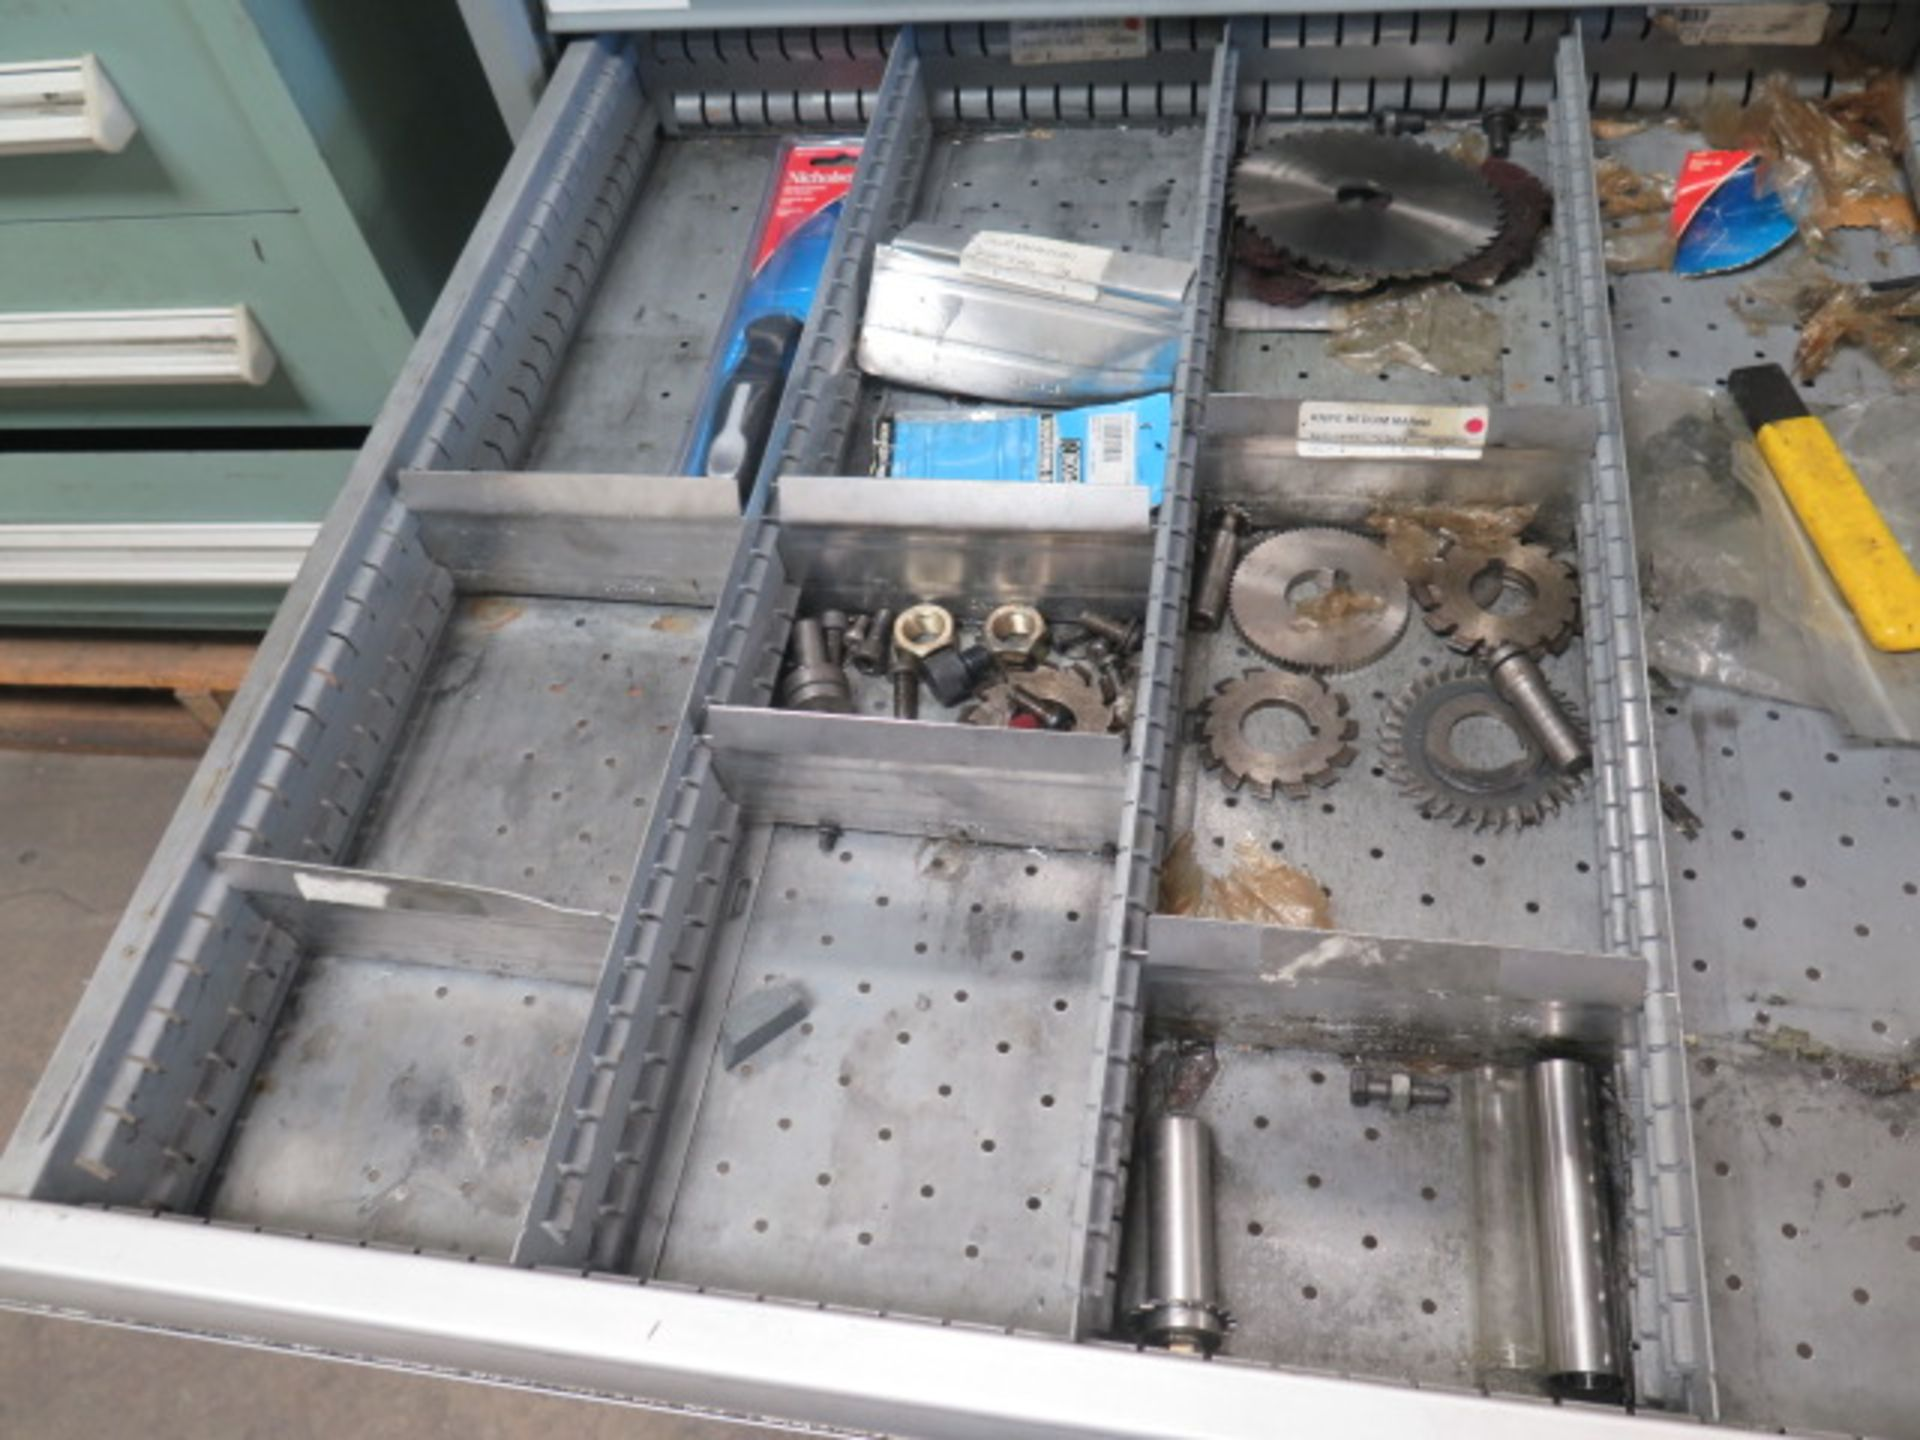 Lista 9-Drawer Tooling Cabinet w/ Mill Clamps (SOLD AS-IS - NO WARRANTY) - Image 9 of 11